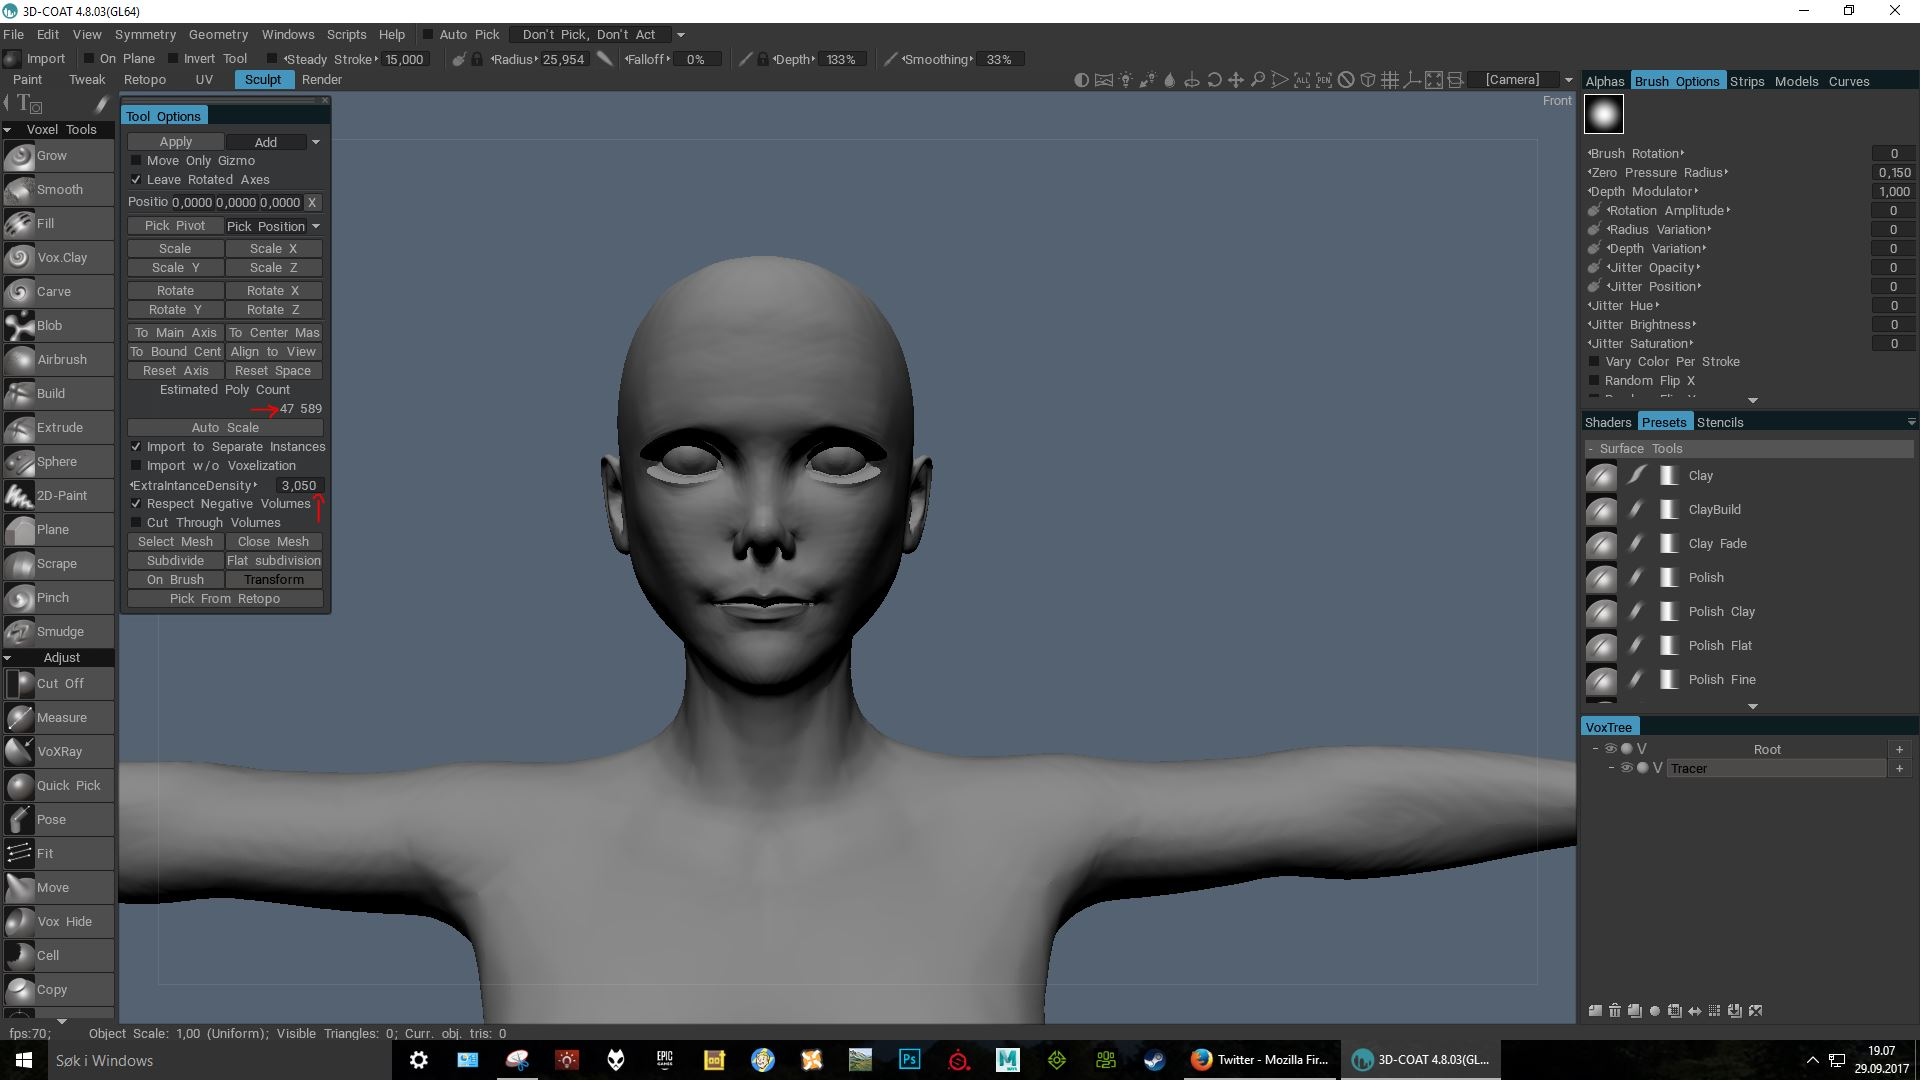 Need to import highpolycount model for detail sculpt - 3DCoat - 3D